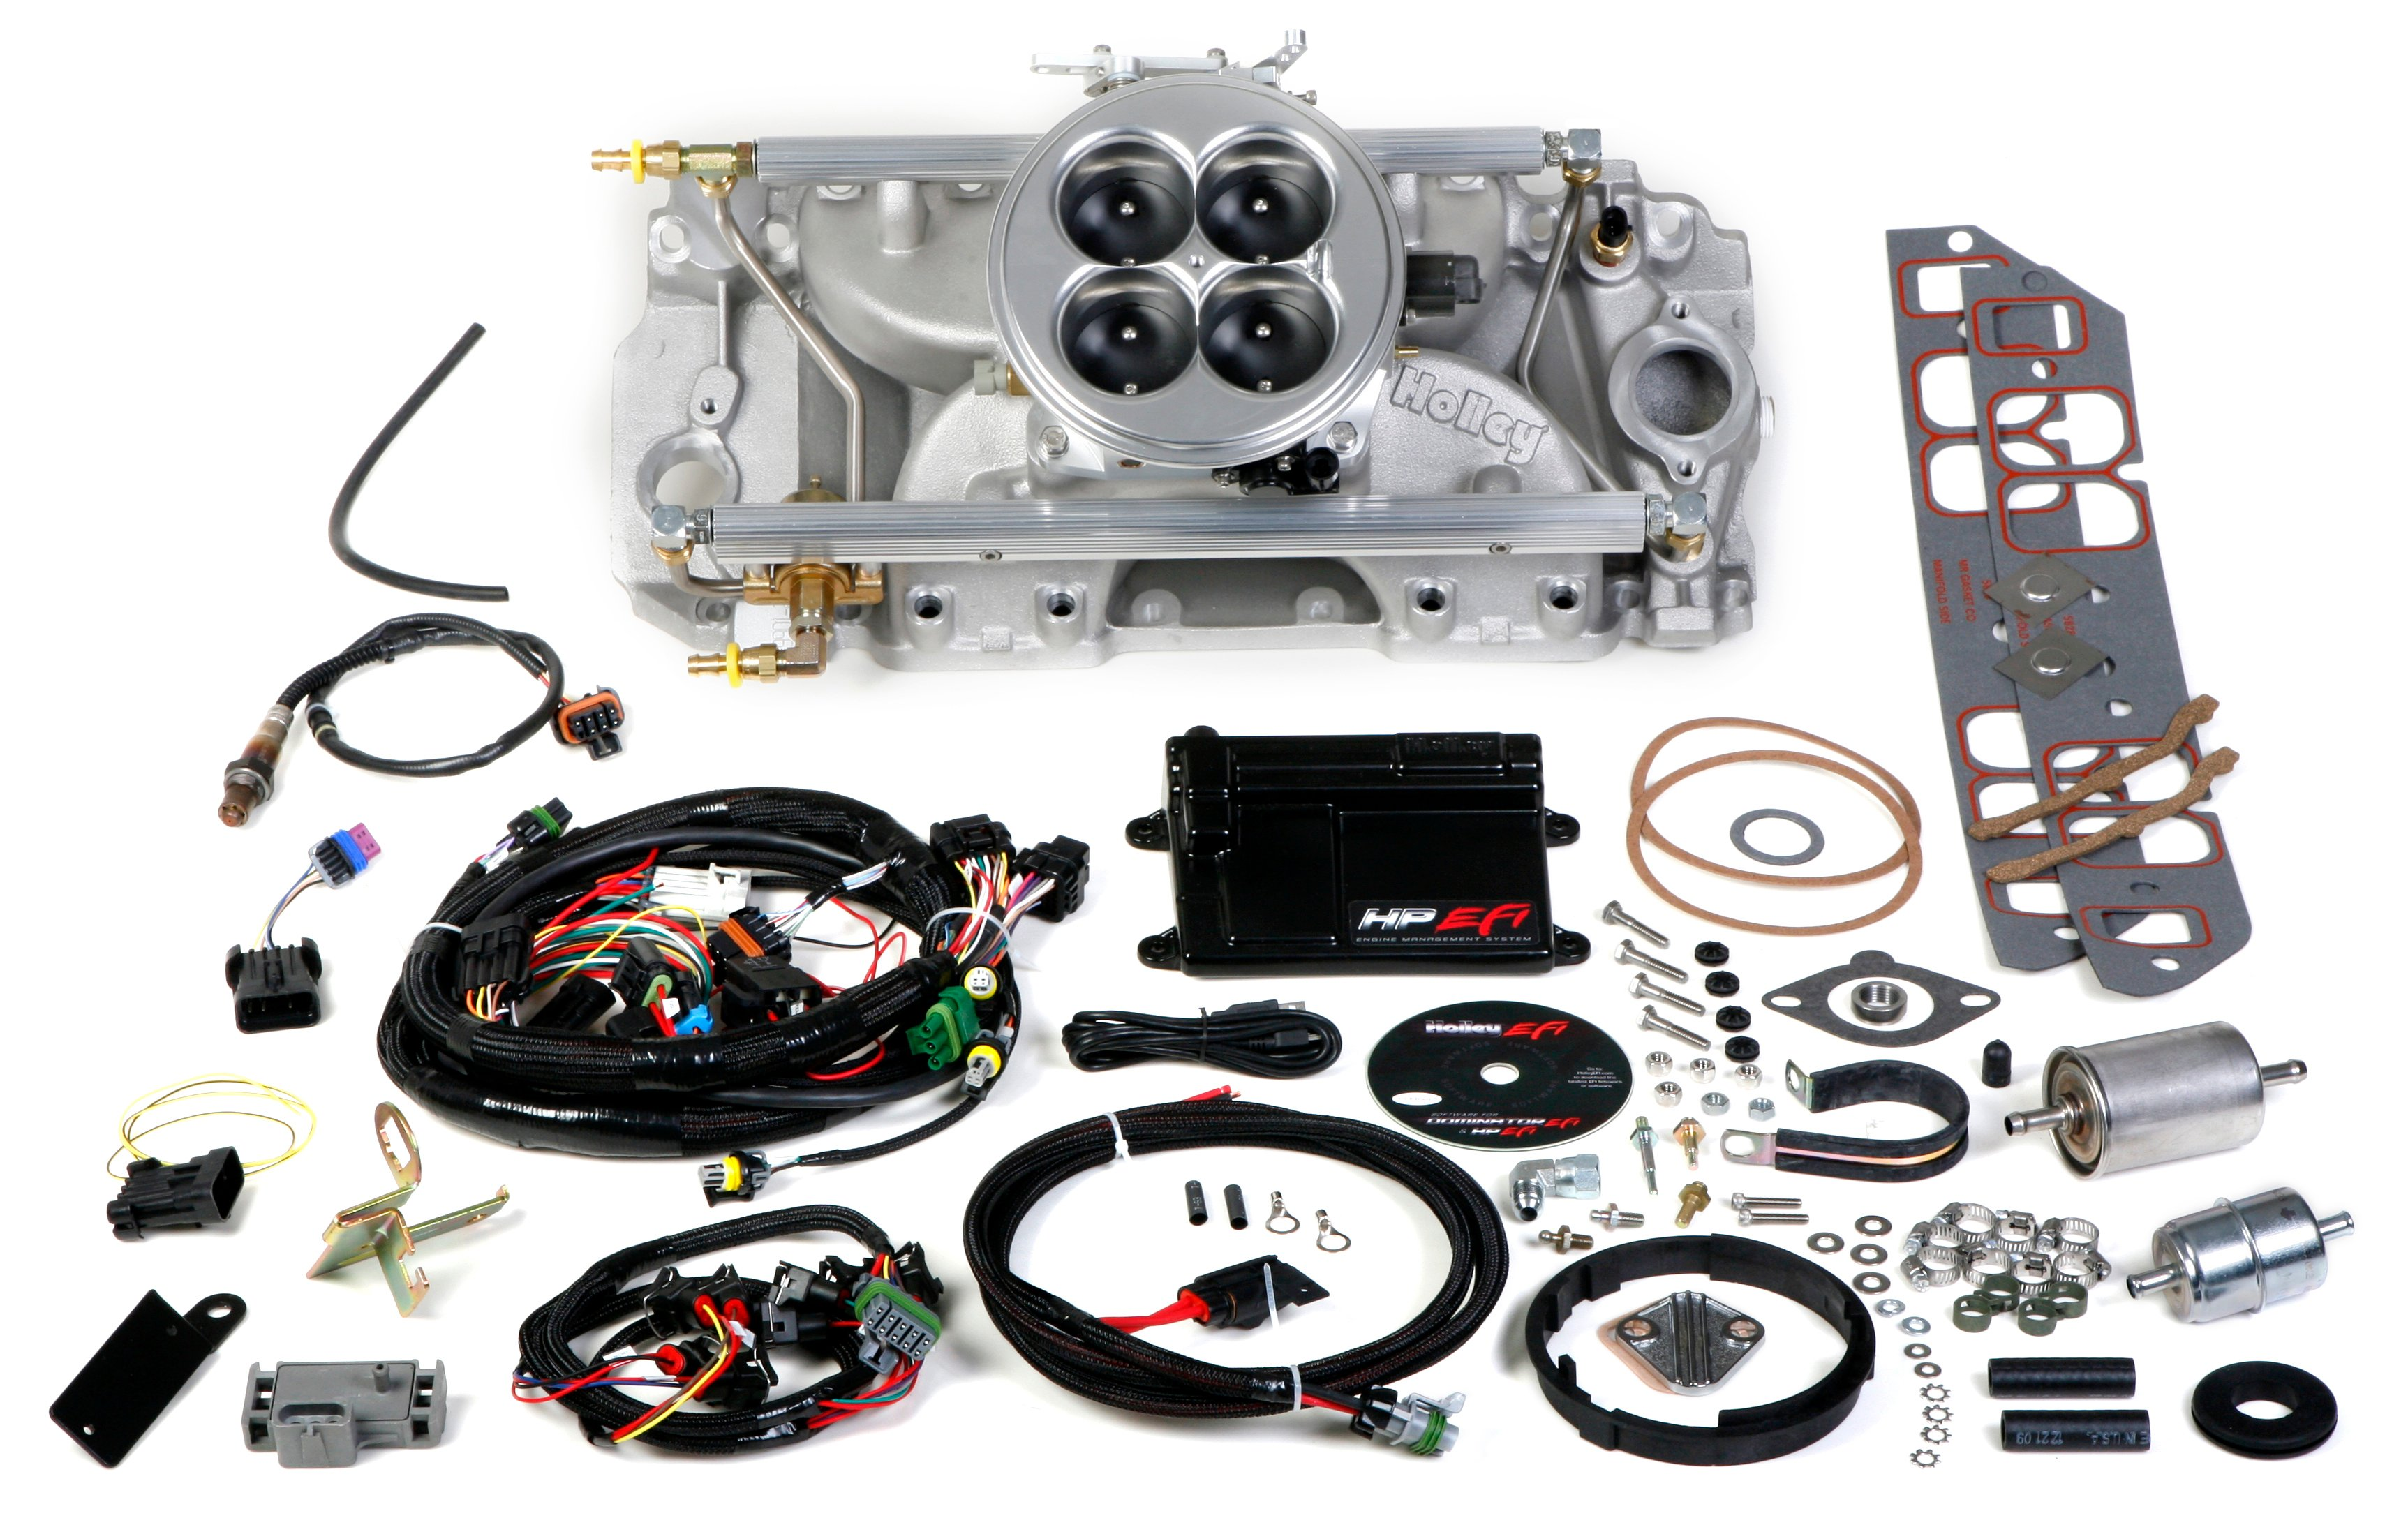 550-838 - HP EFI 4bbl Multi-Port Fuel Injection System Image